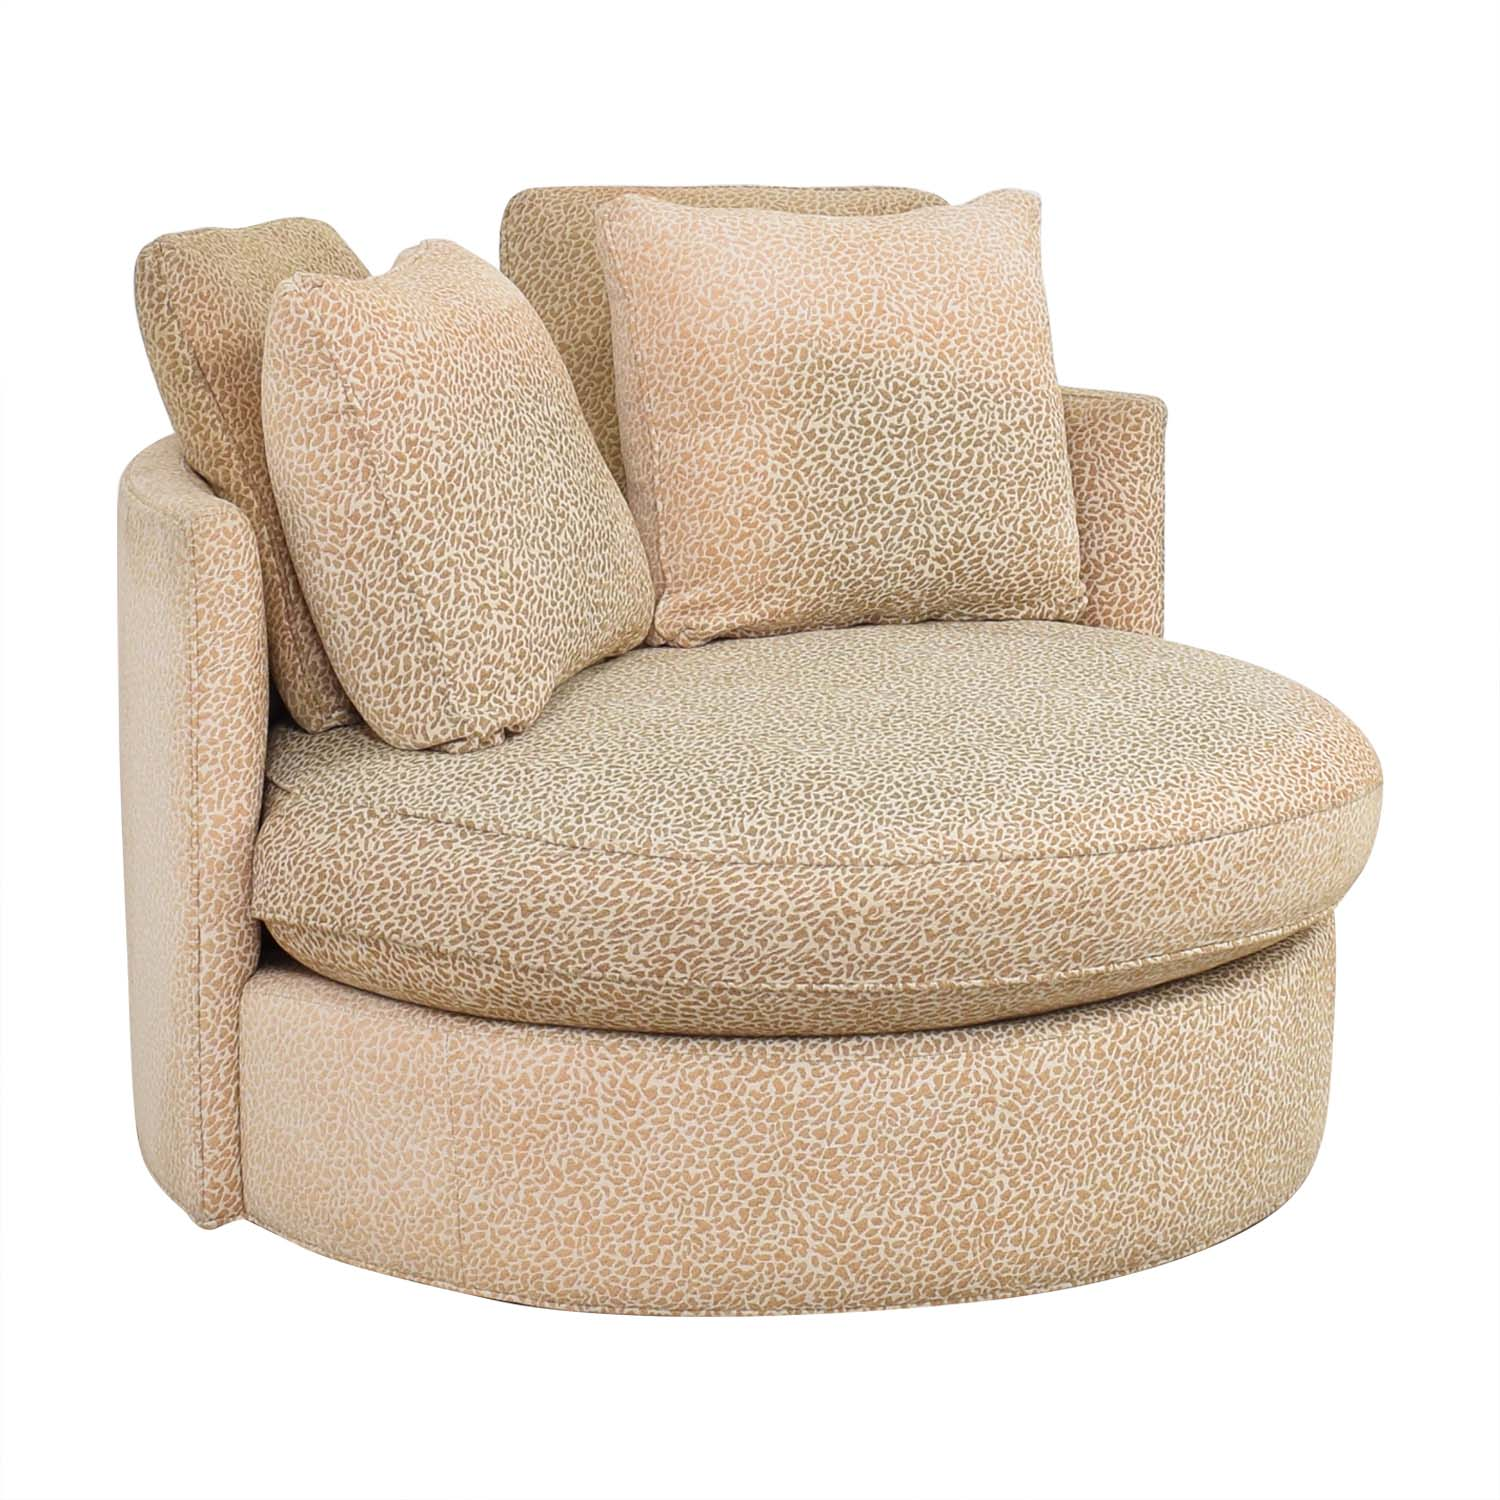 Macy's Circle Swivel Chair / Accent Chairs